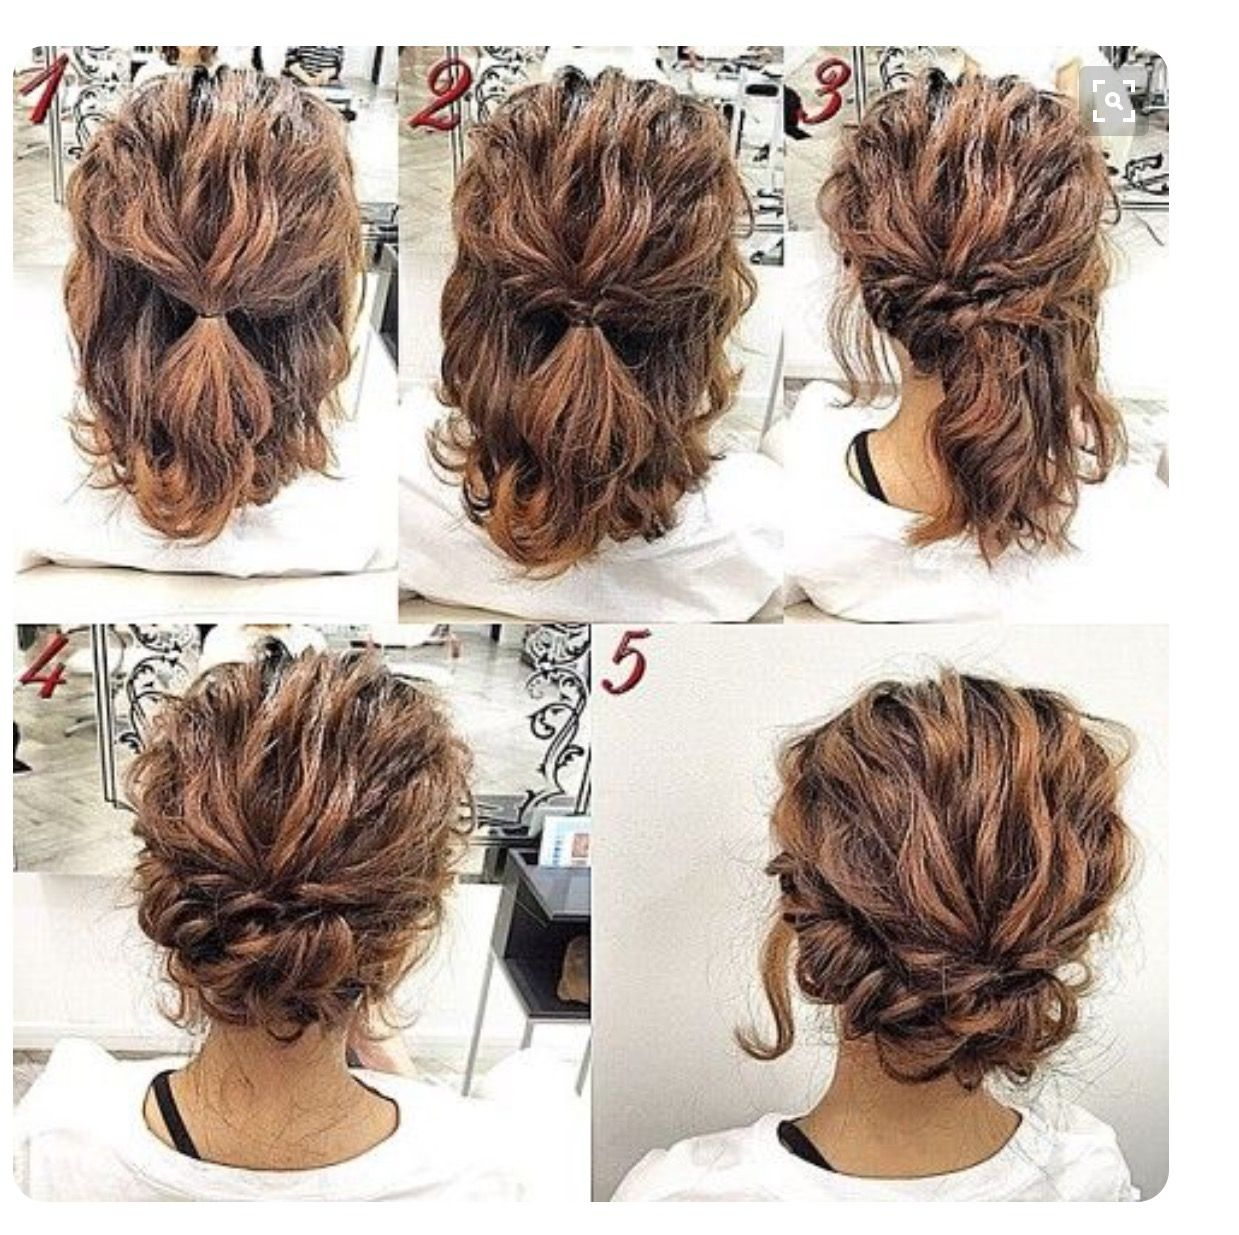 Pin by lily ginder on beauty tricks pinterest hair hair styles